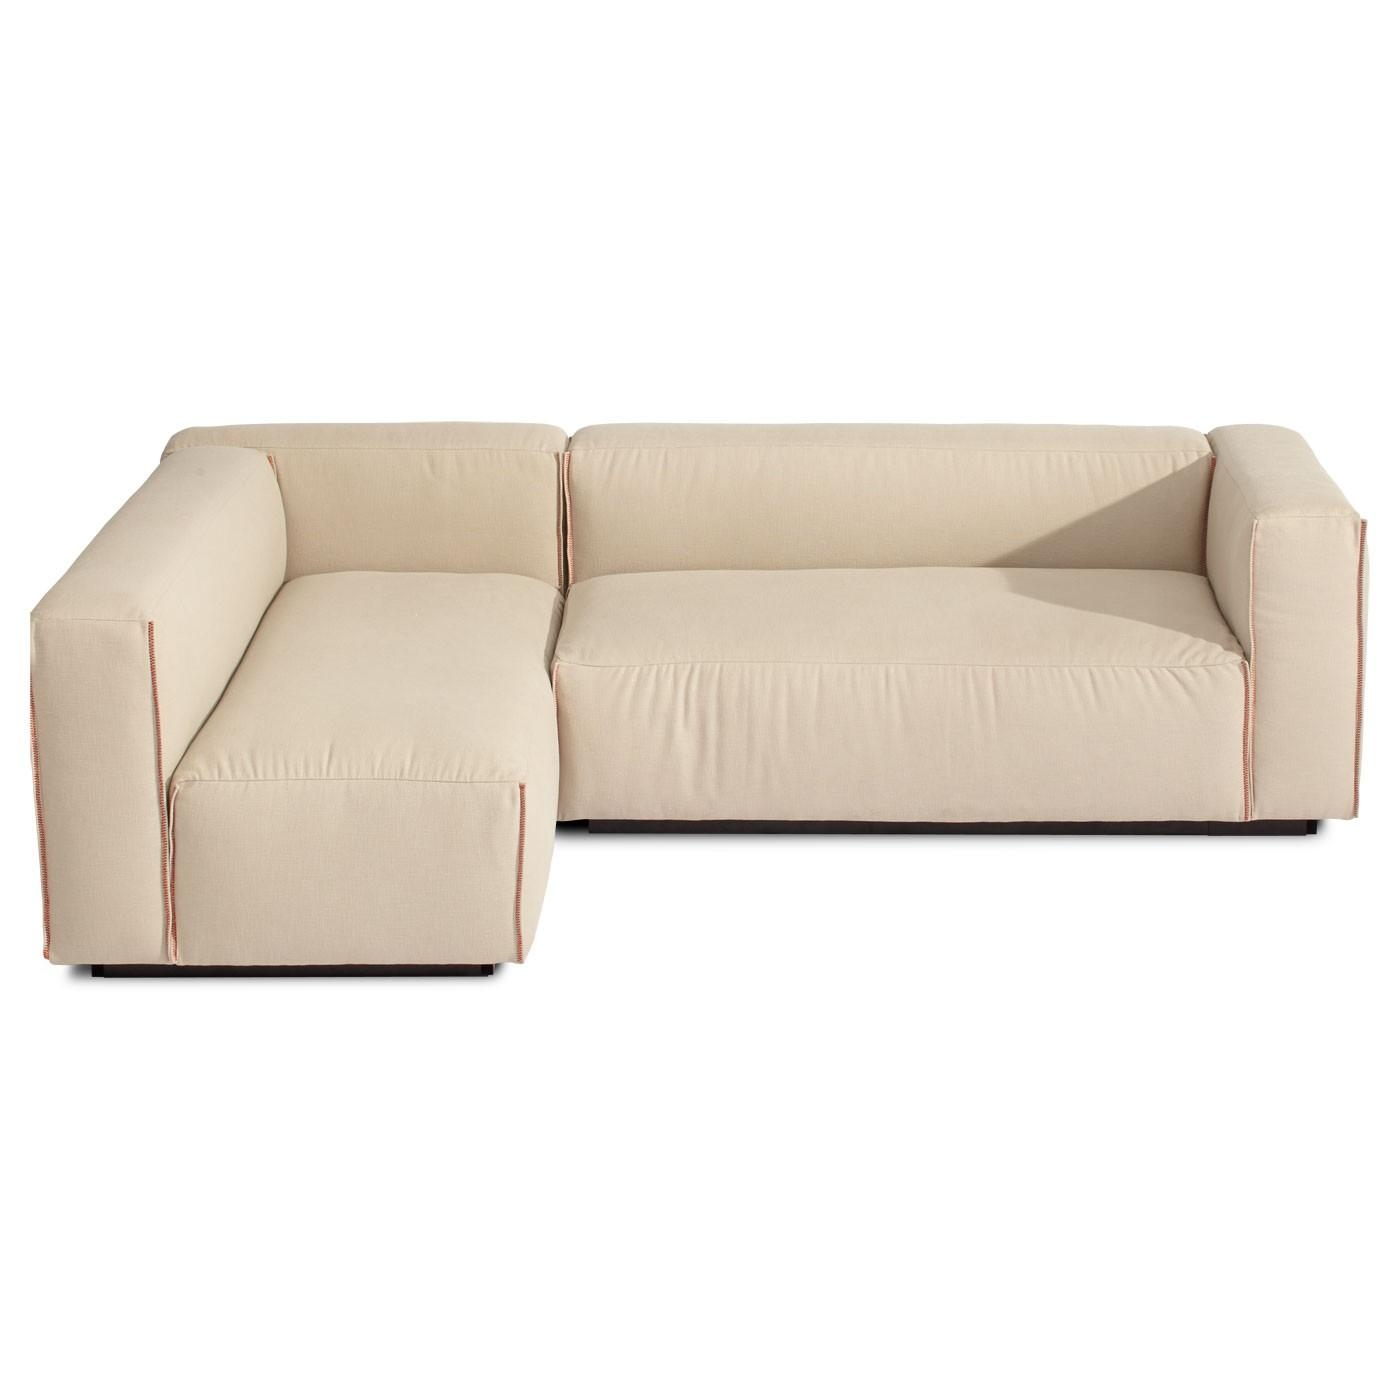 Sectional Sofa For Small Spaces (View 4 of 20)